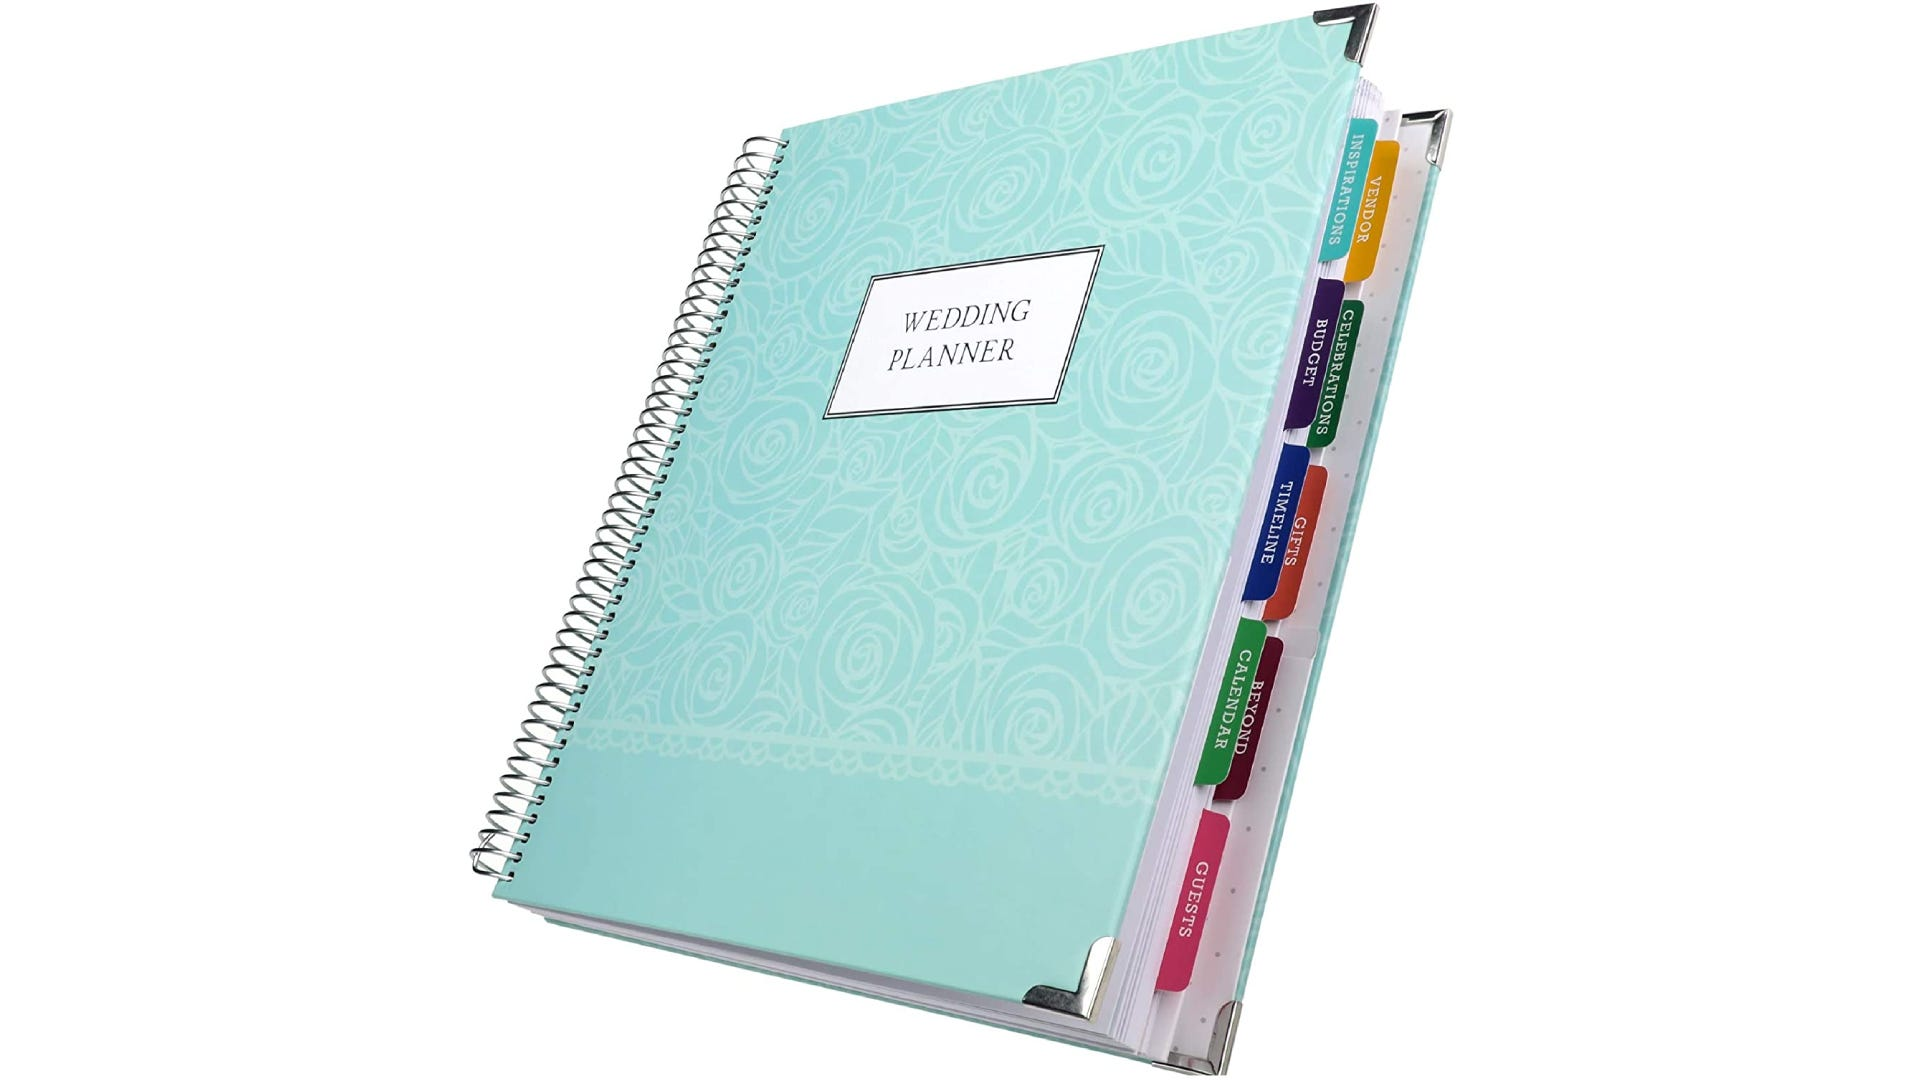 A teal wedding planner with tabbed pages.